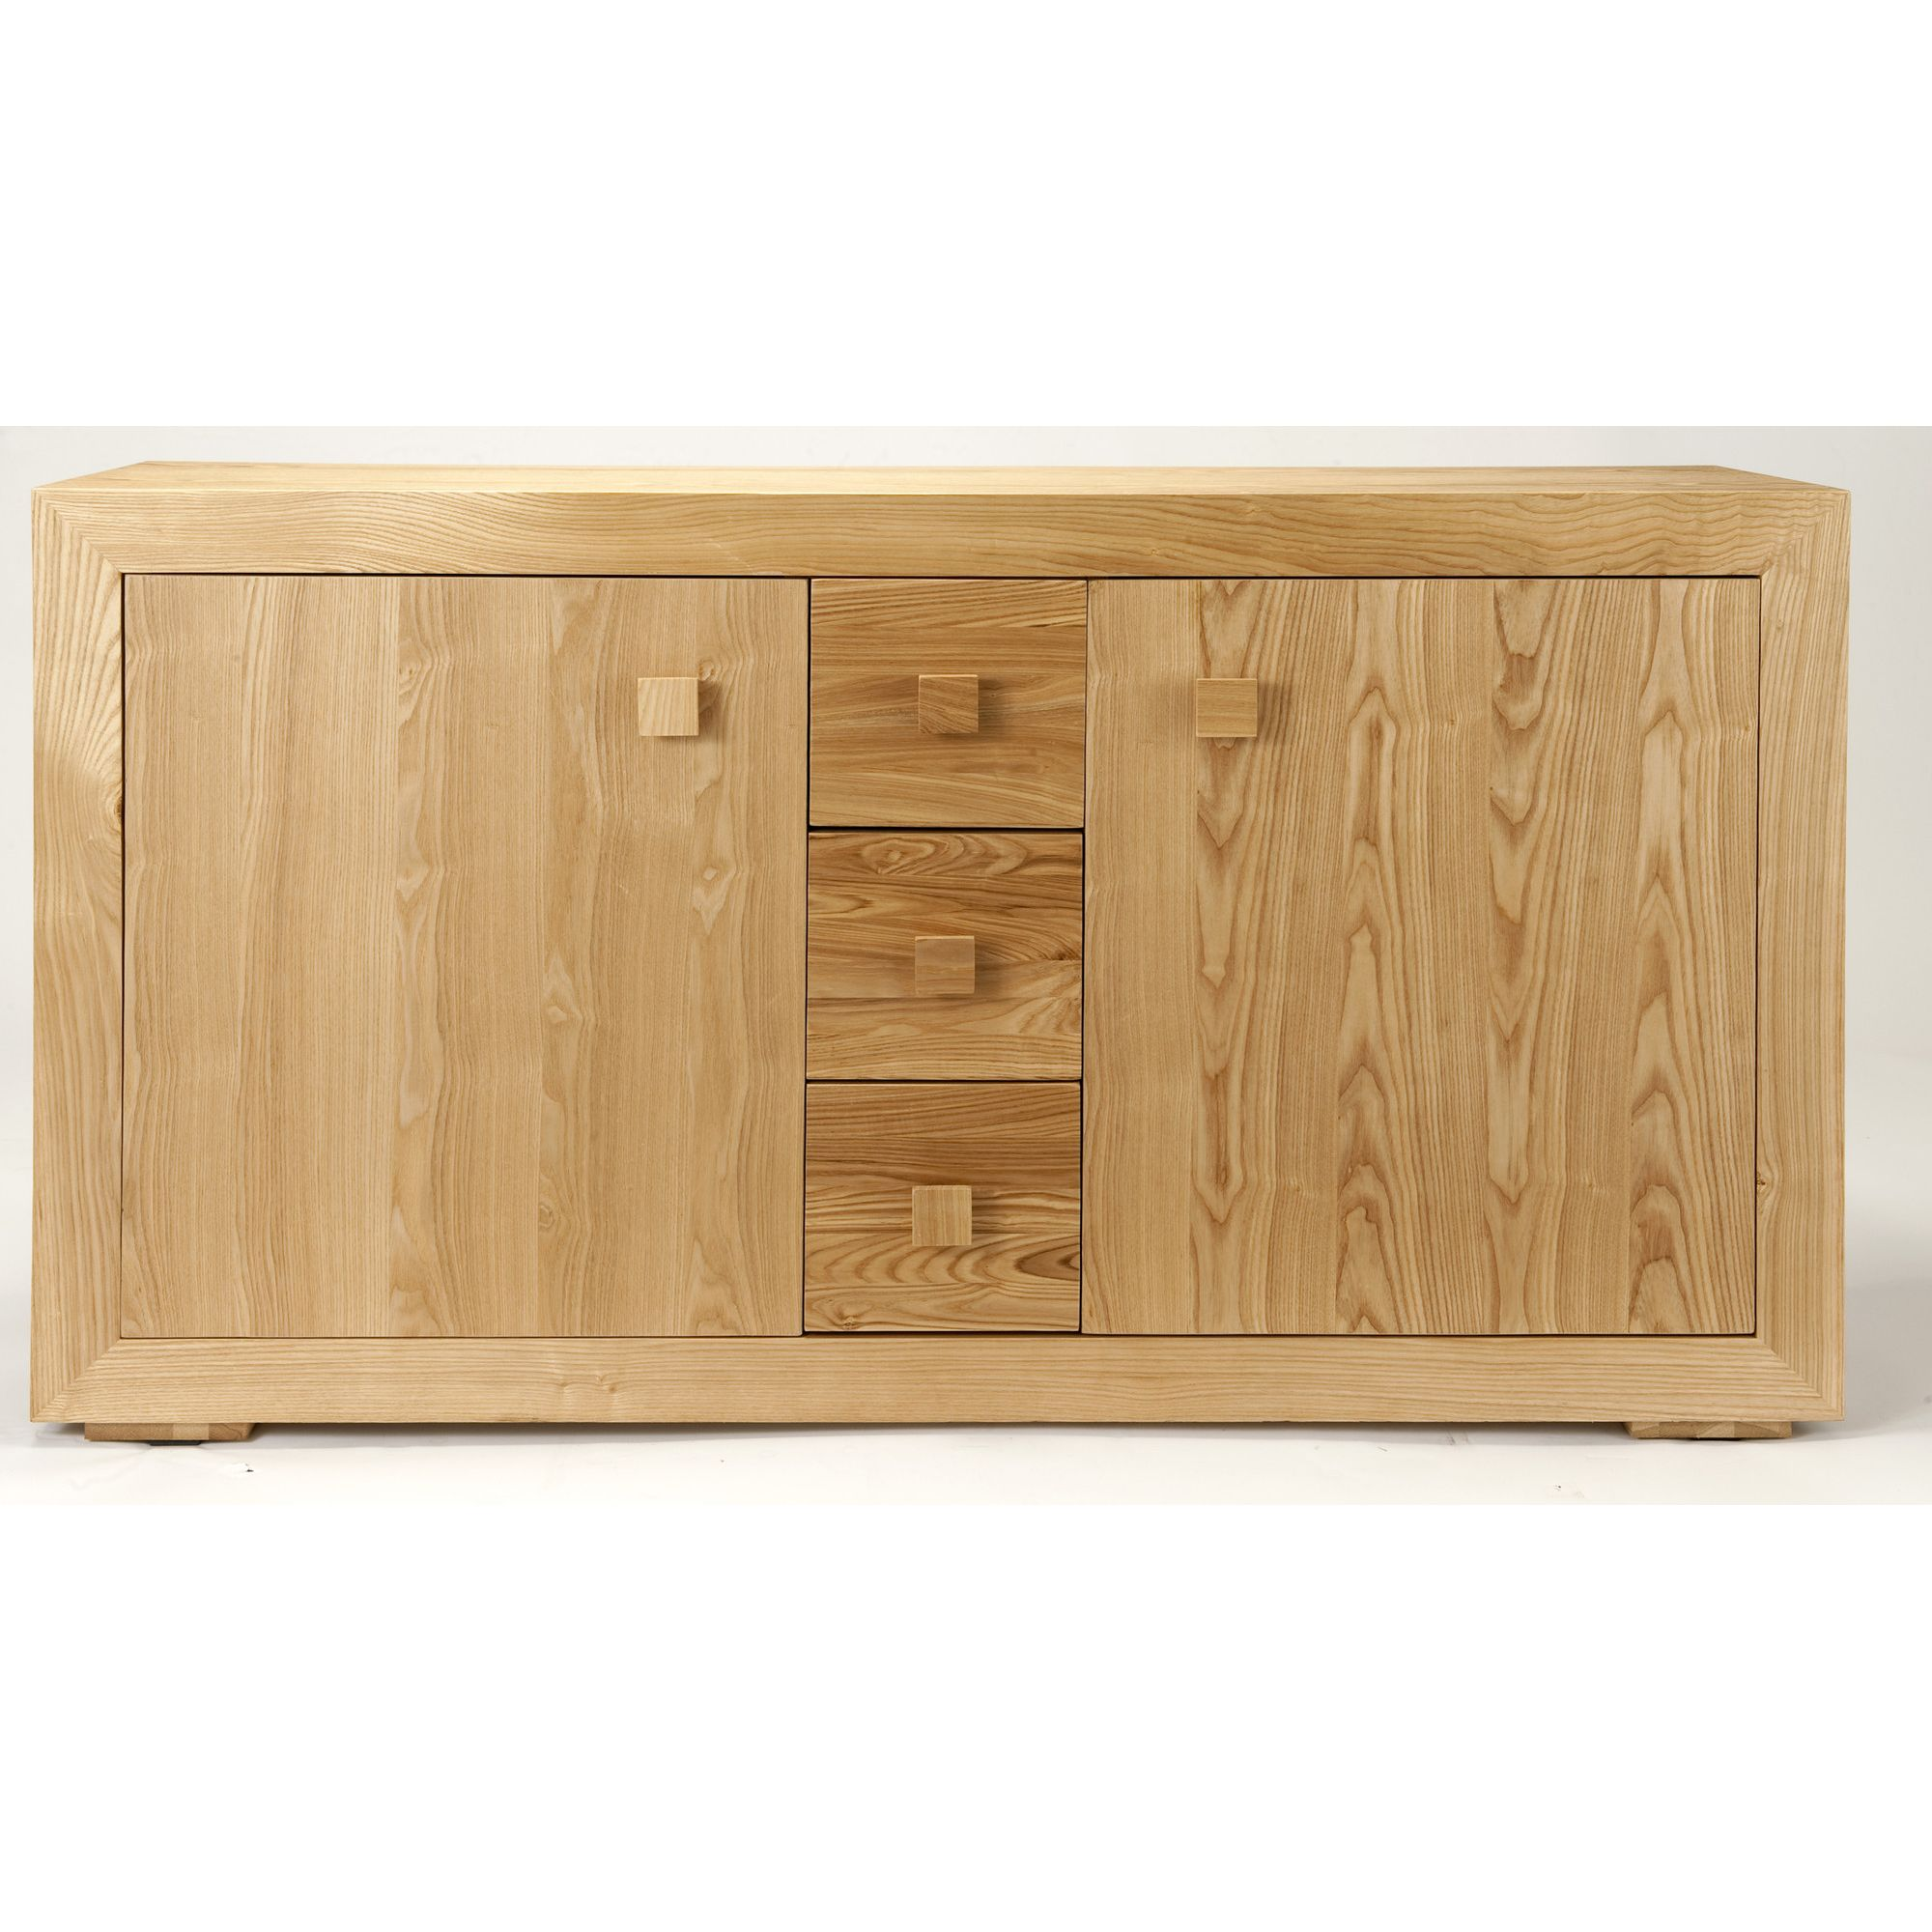 Originals Cubistic Dining Sideboard at Tesco Direct